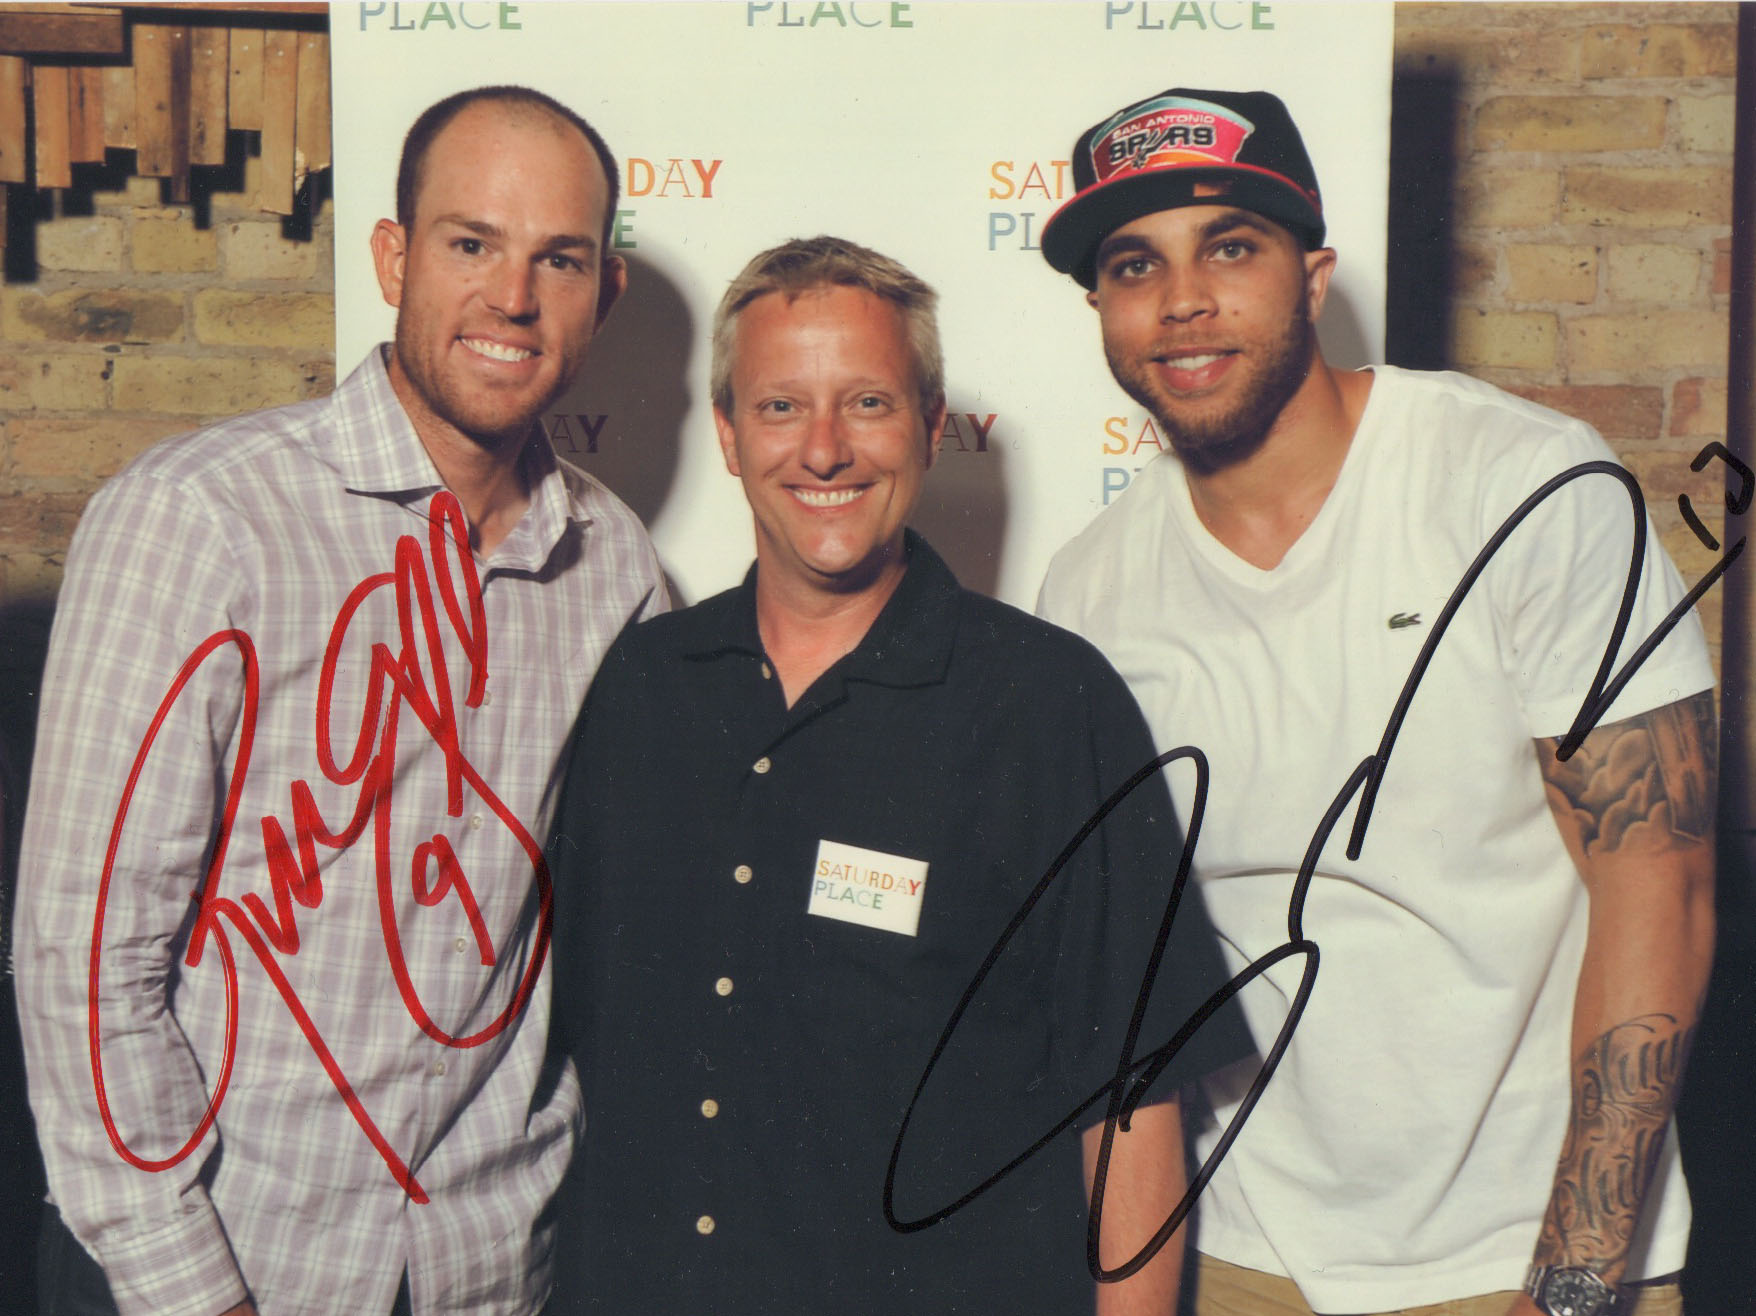 Pictured with Curtis Newborn are Robbie Gould and Johnn.y Knox